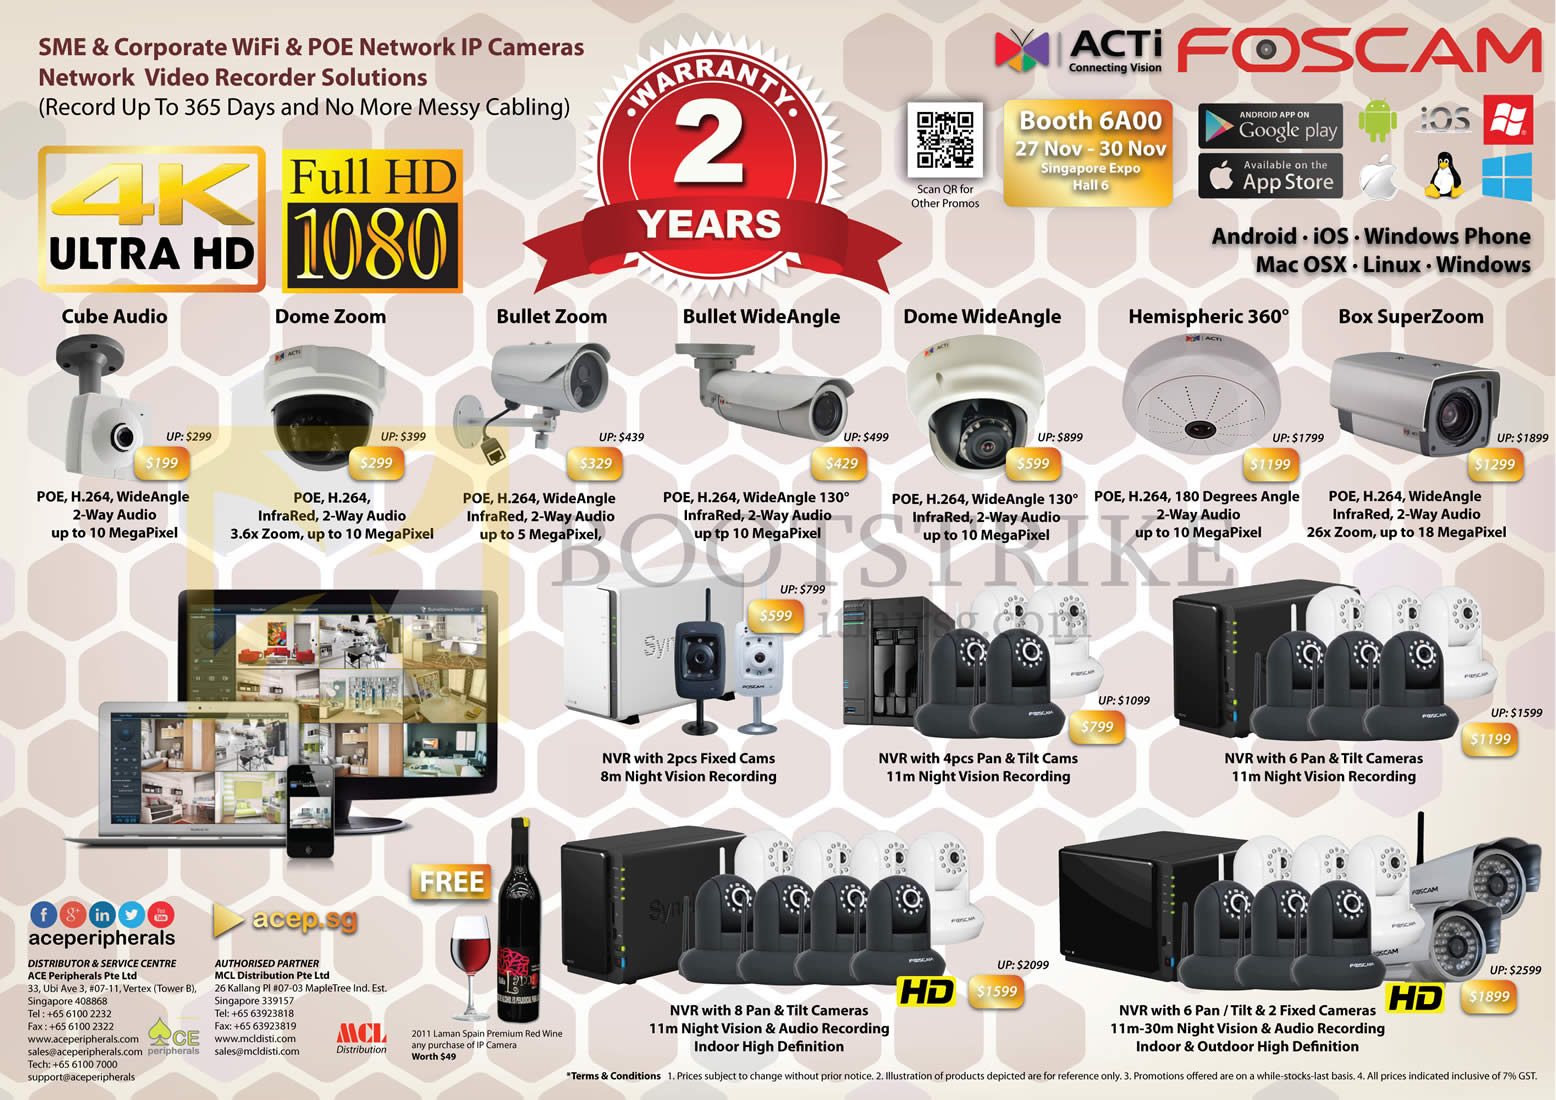 SITEX 2014 price list image brochure of Ace Peripherals ACTi Foscam Network IP POE WiFi Camera Cube Audio, Dome Zoom, Bullet Zoom, Bullet Wide Angle, Hemispheric 360, Box SuperZoom